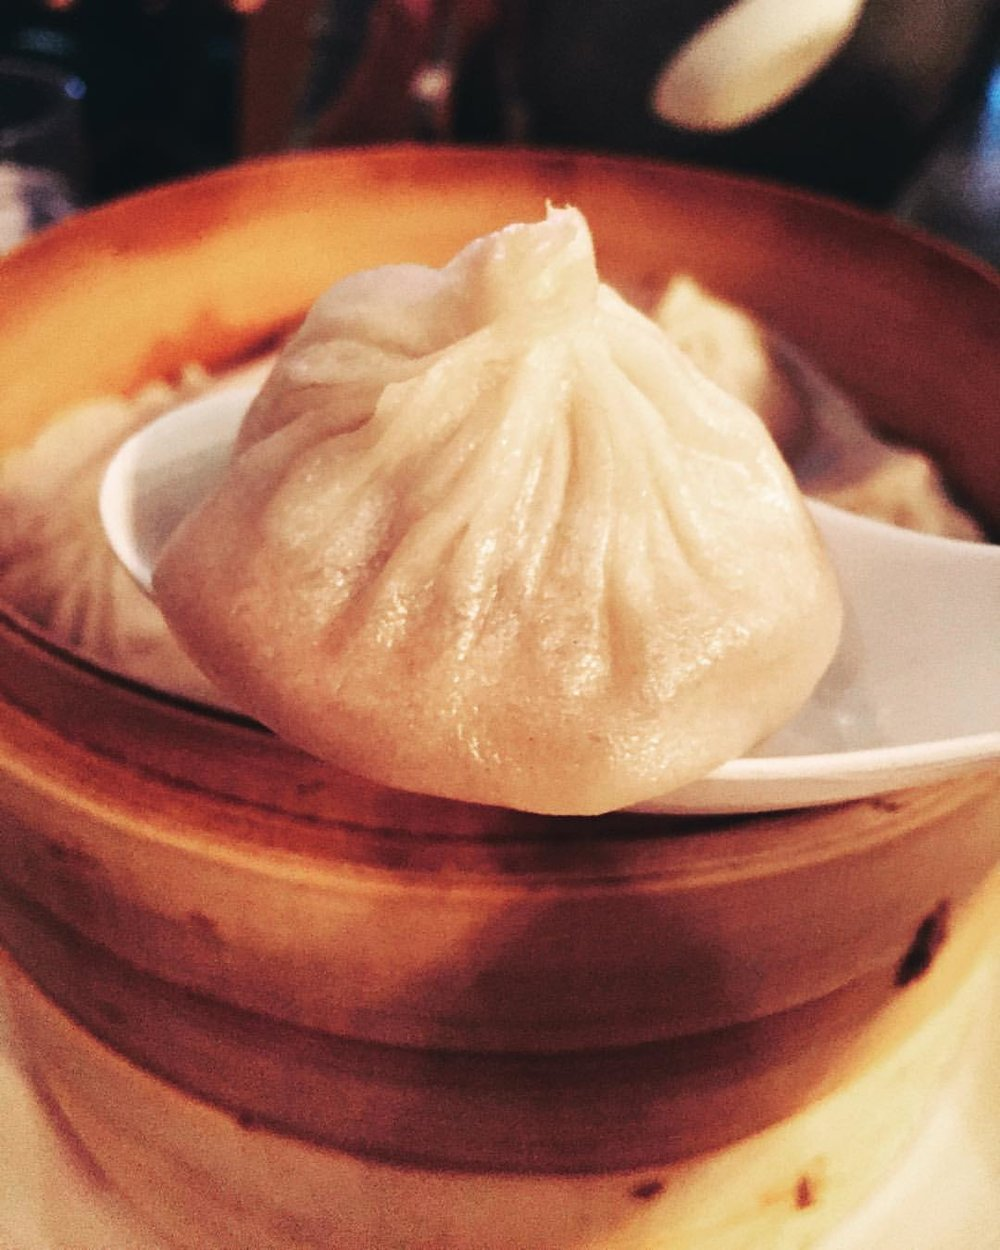 Craving right now: the pork & crab soup dumplings from Kung Fu Xiao Long Bao in Flushing.            #flushing #flushingny #queens #queensnyc #queensfood #queenseats #flushingfood #food #xiaolongbao #queensistasty #qnsmade #heartofqueens  (at Kung Fu Xiao Long Bao)